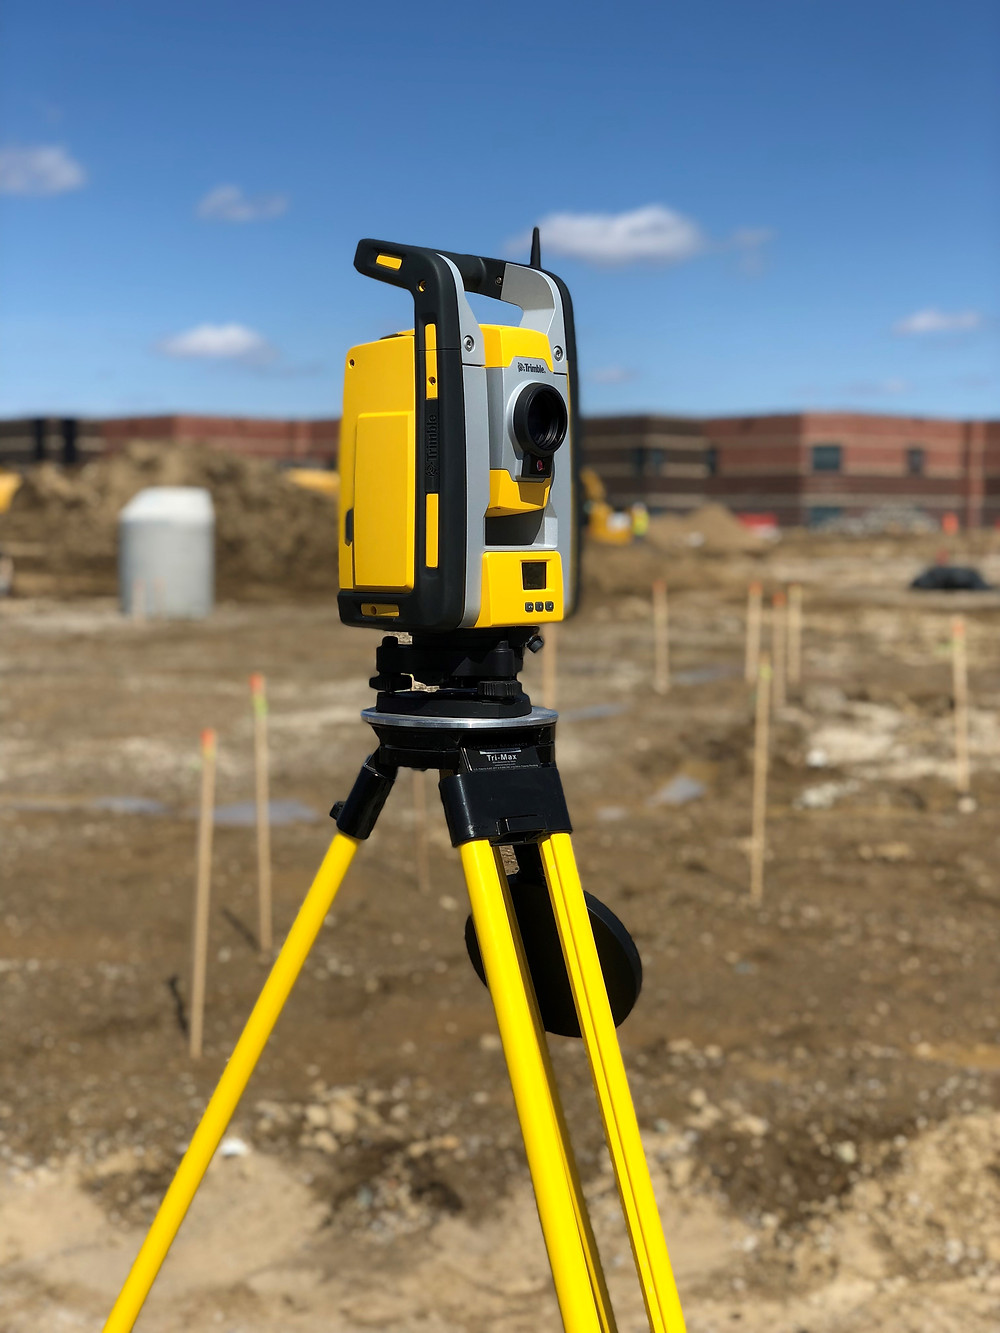 Field layout using Trimble Robotic Total Station for BIM design